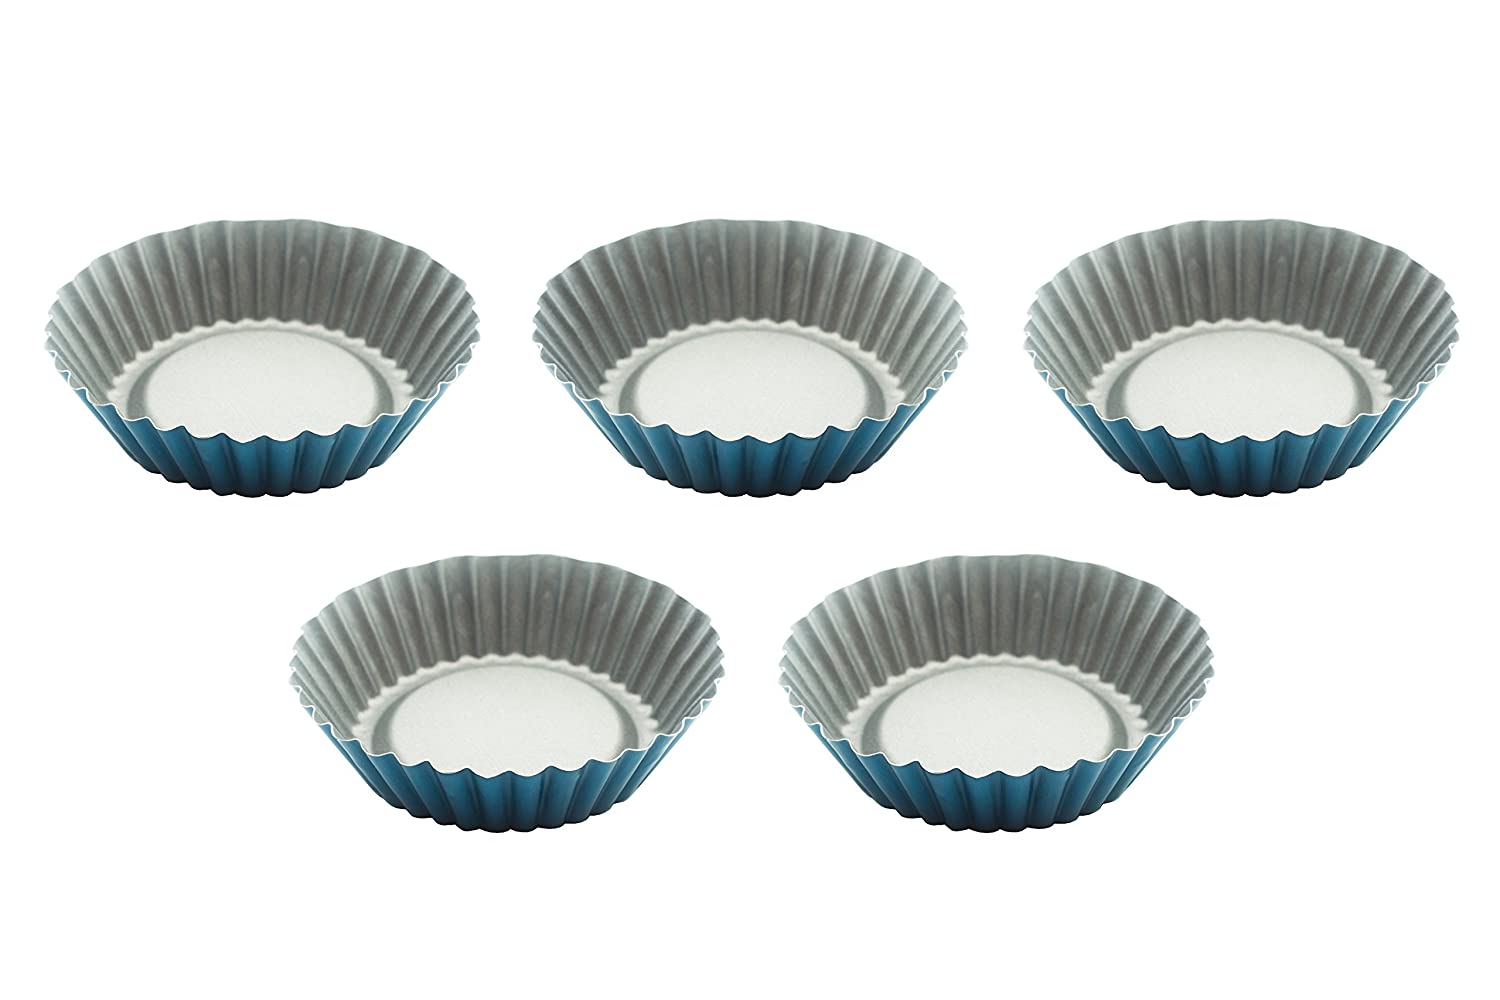 amazon com eco haus living round tart quiche pan set premium 5